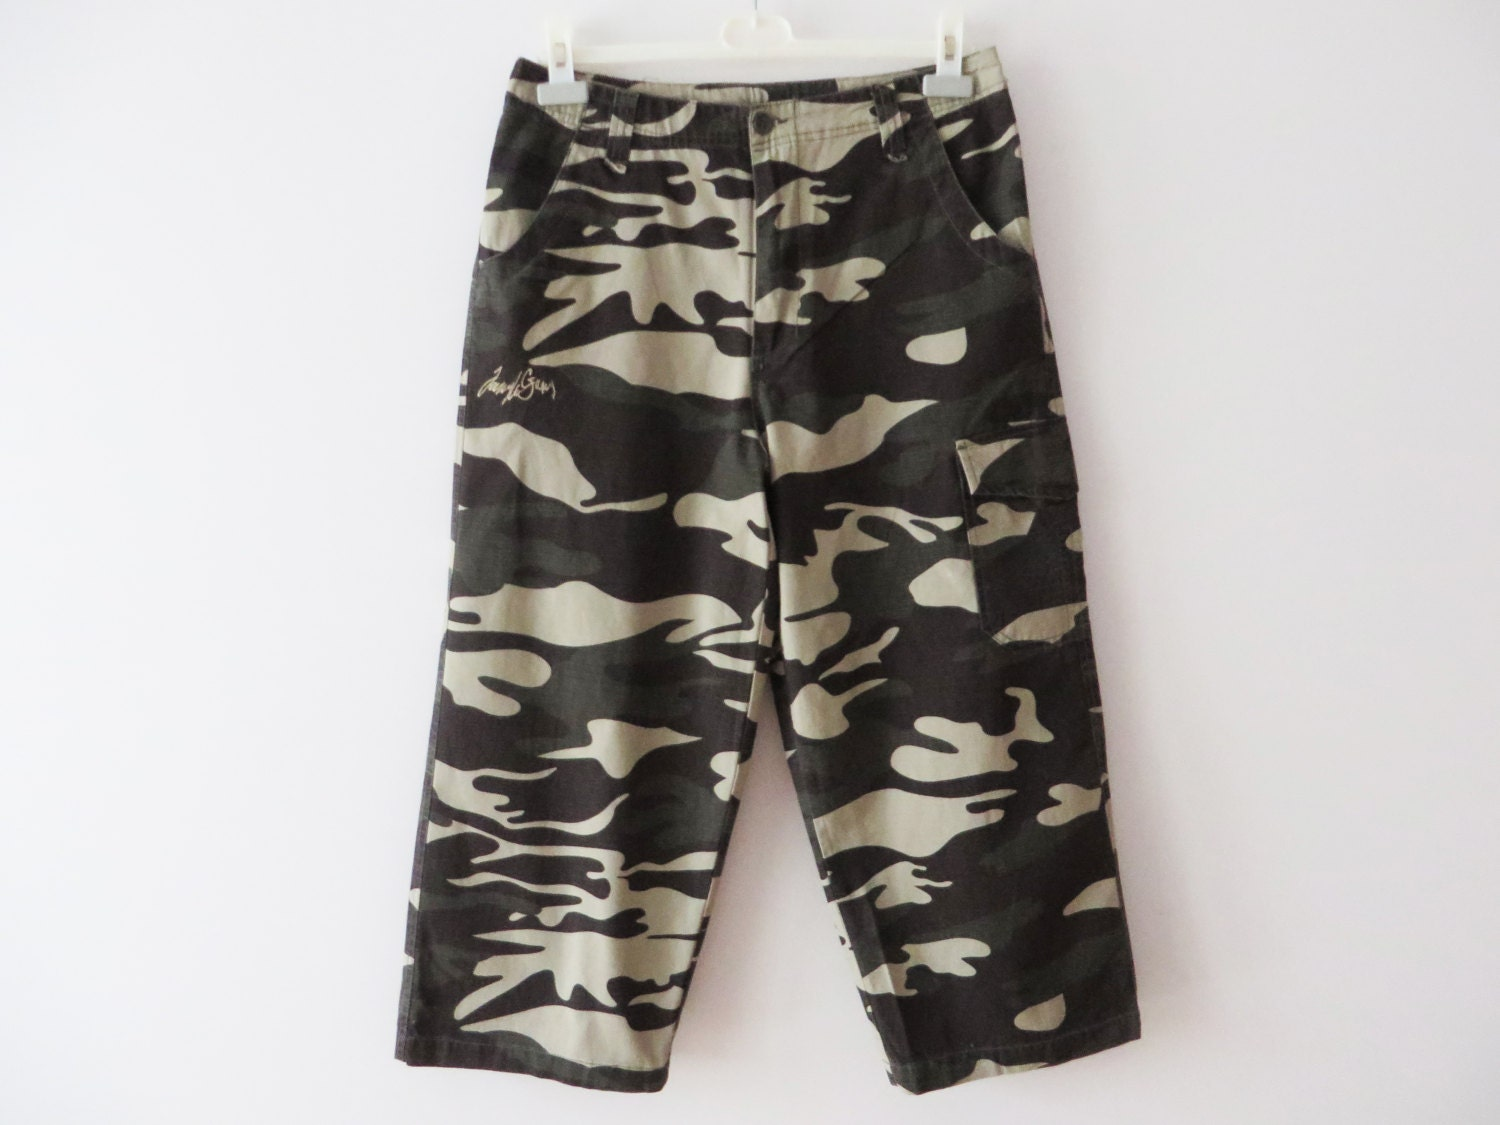 Camouflage Pants Men Camo Knickers Military Style Pants  e2c4ae2ed3ec